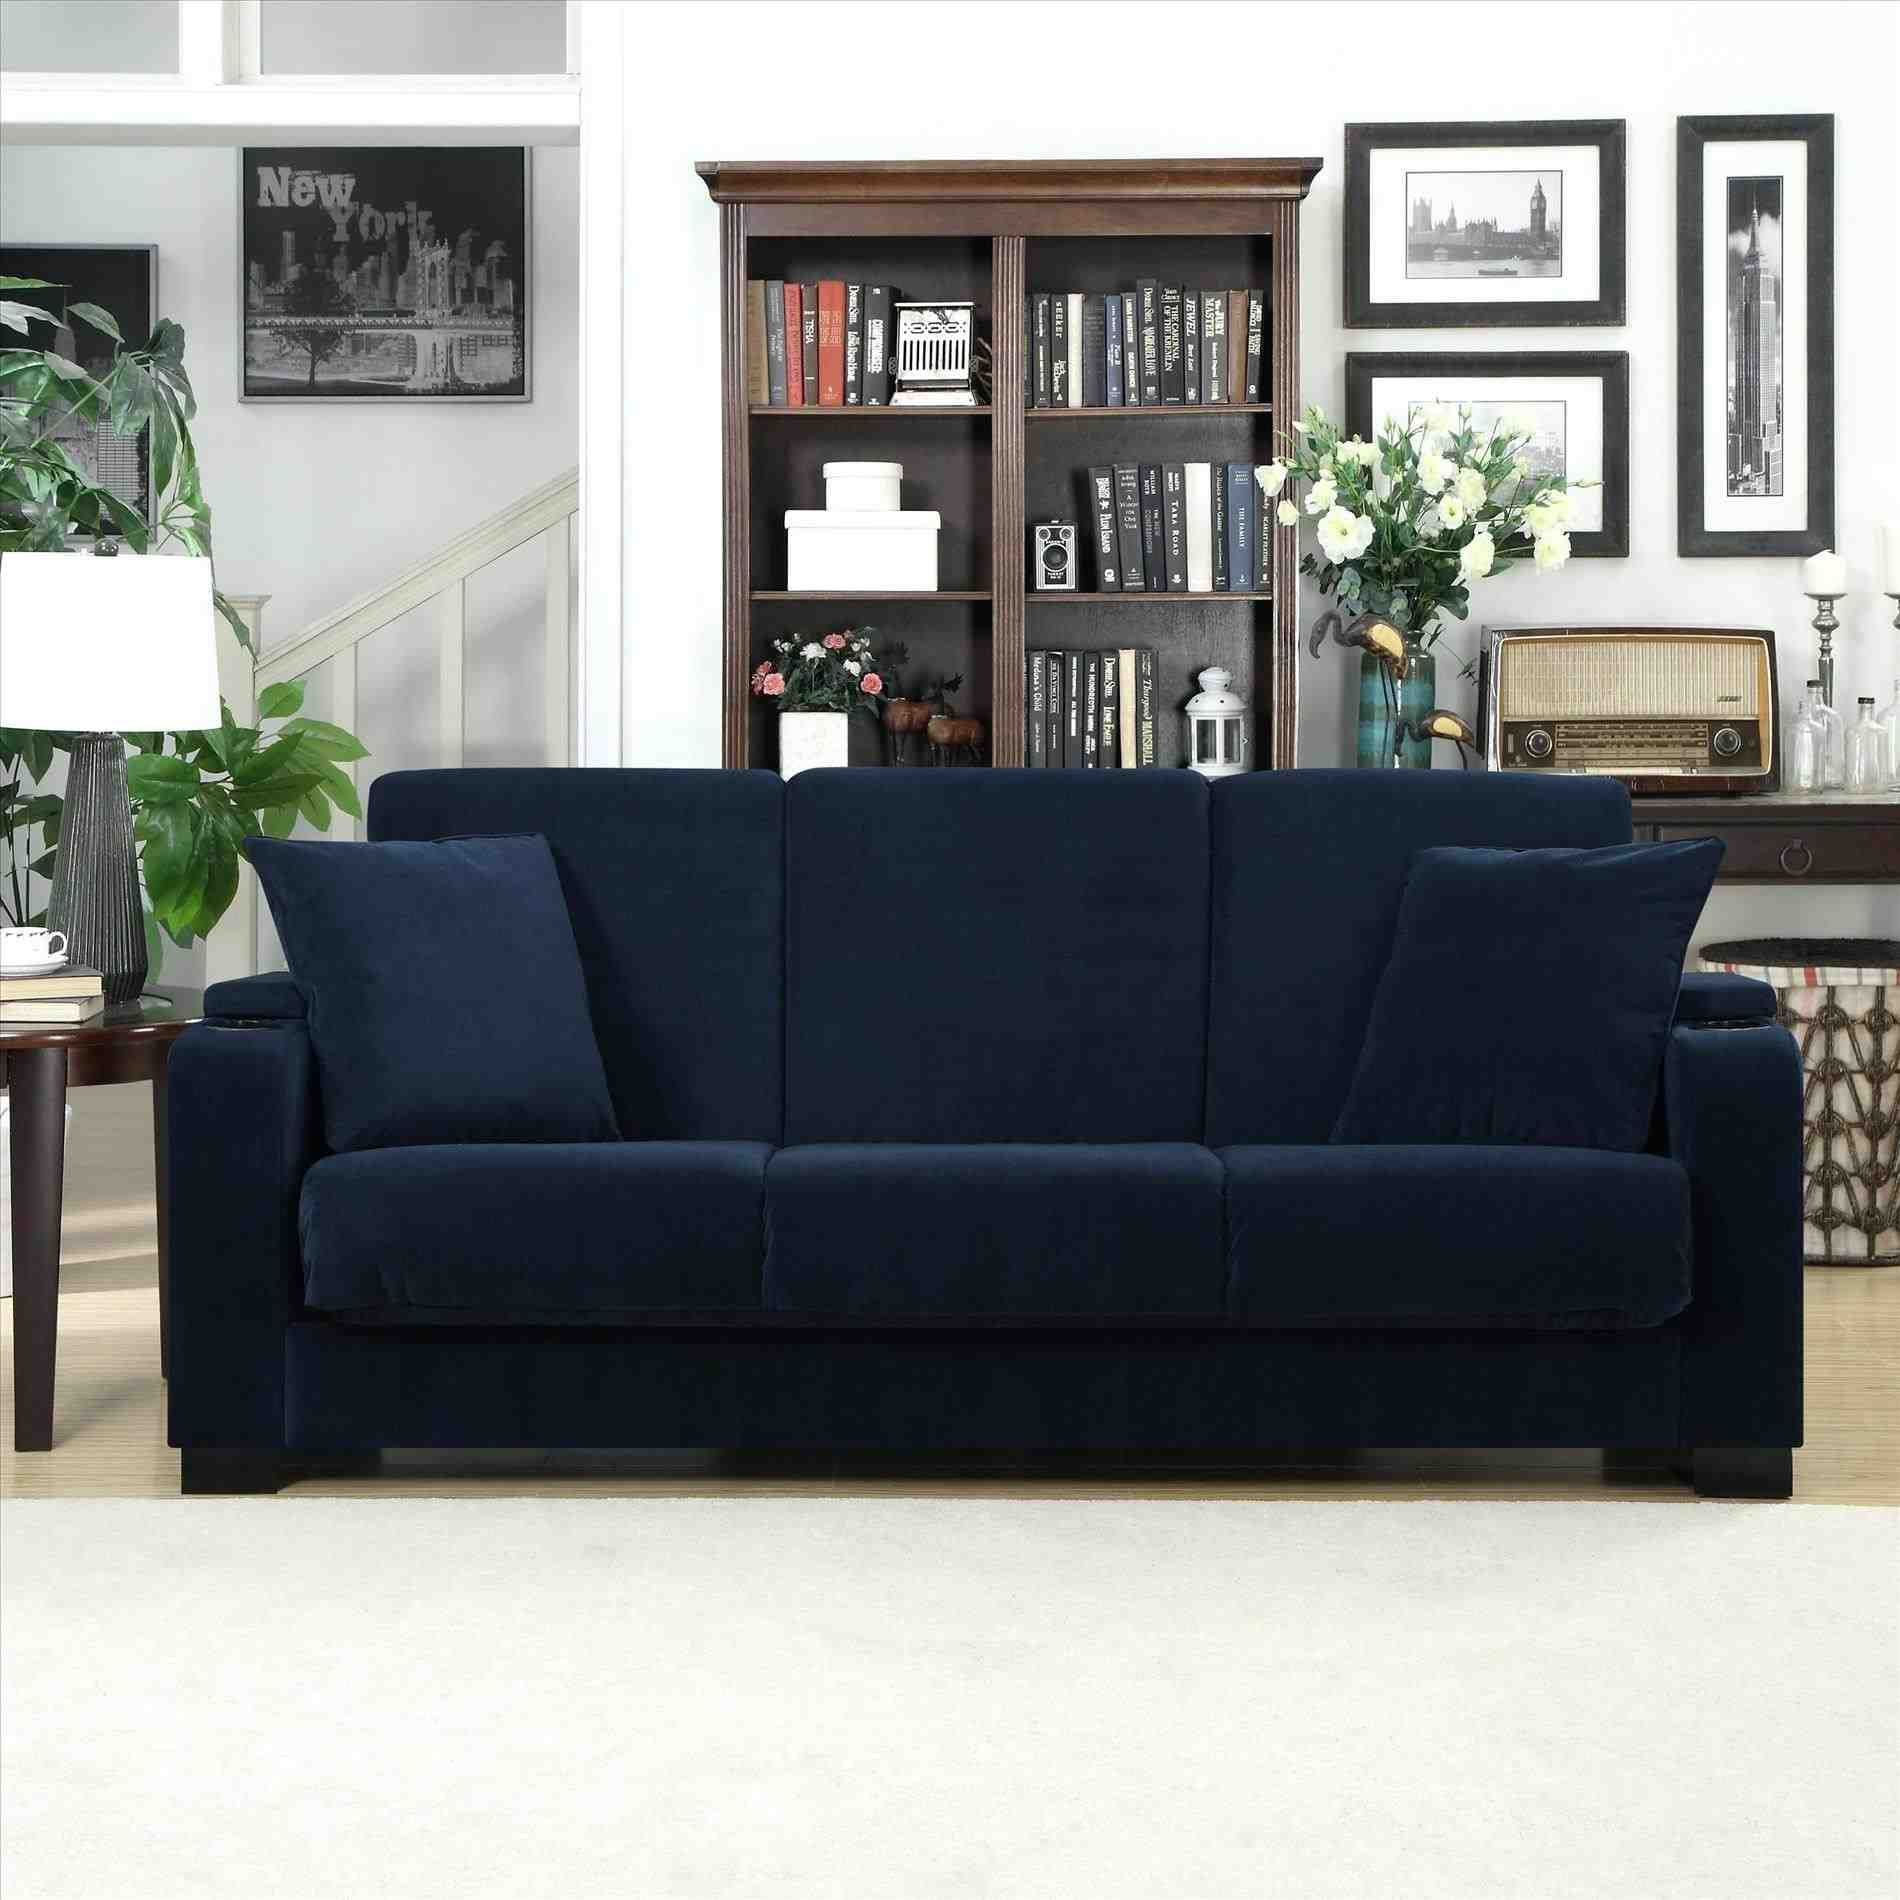 Cheap Sofa Deals Uk - living room chairs cheap furniture prices in